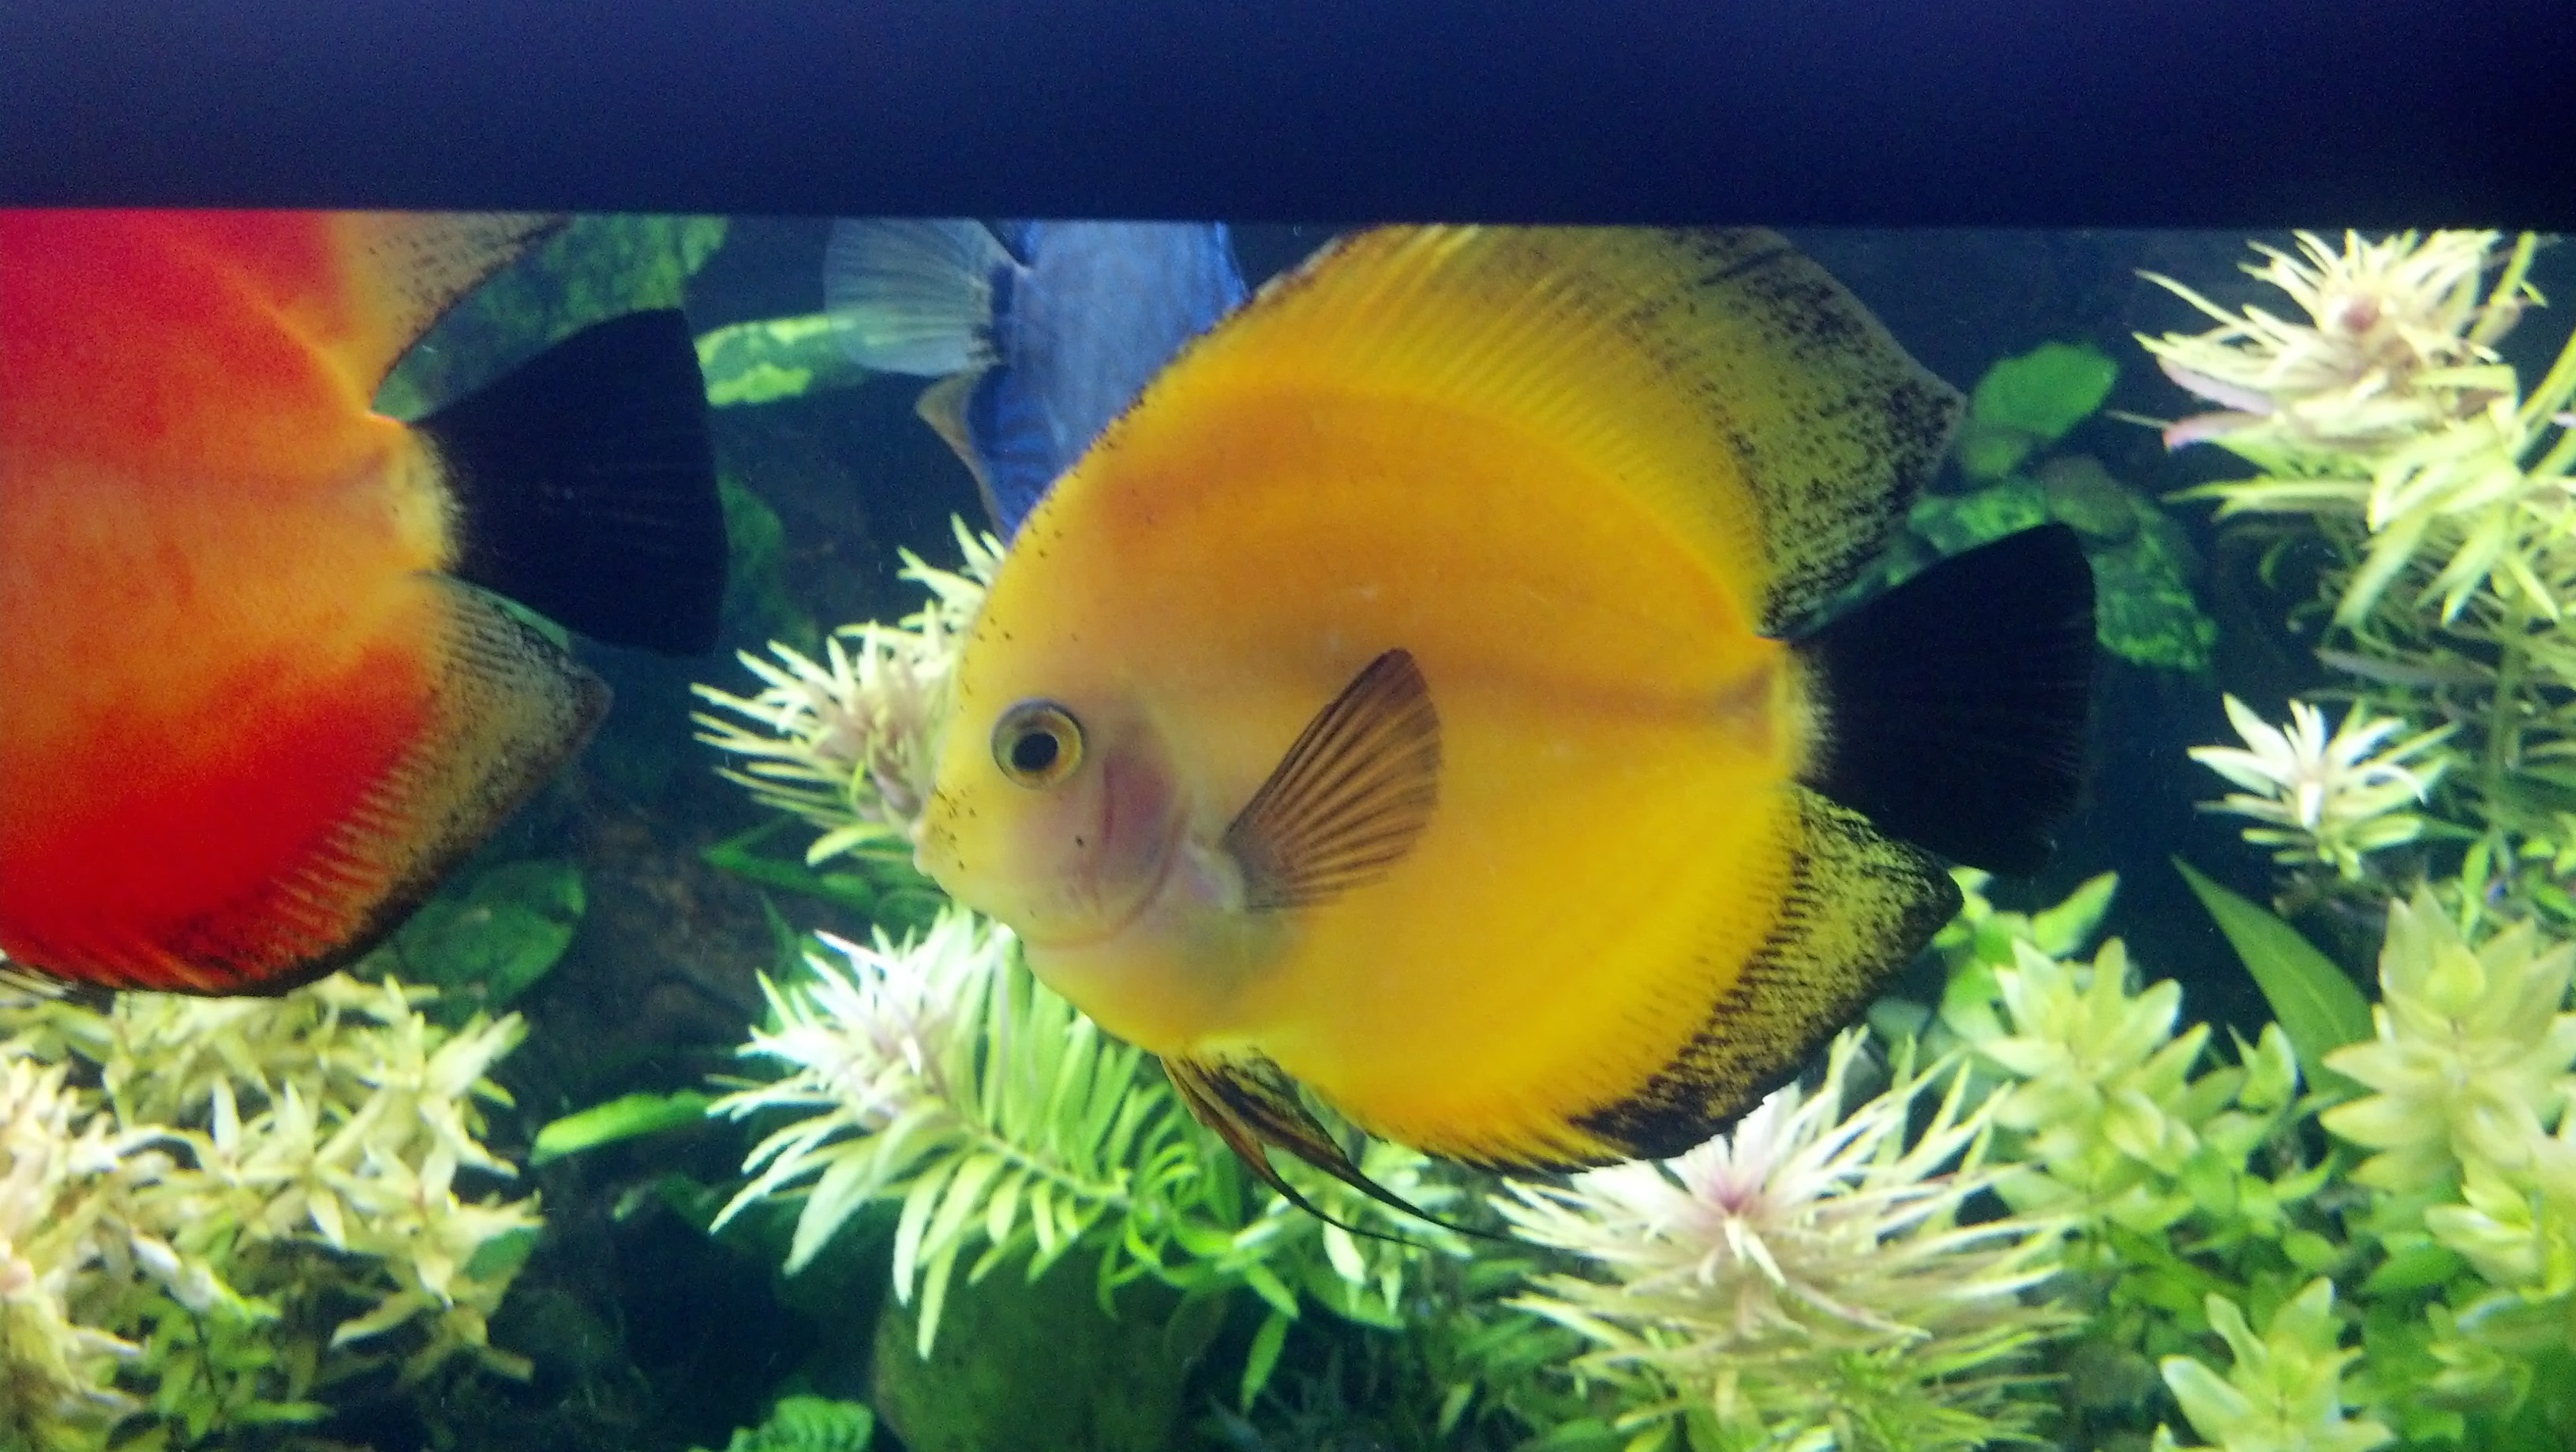 Discus care advanced aquarium concepts for Fish tank care